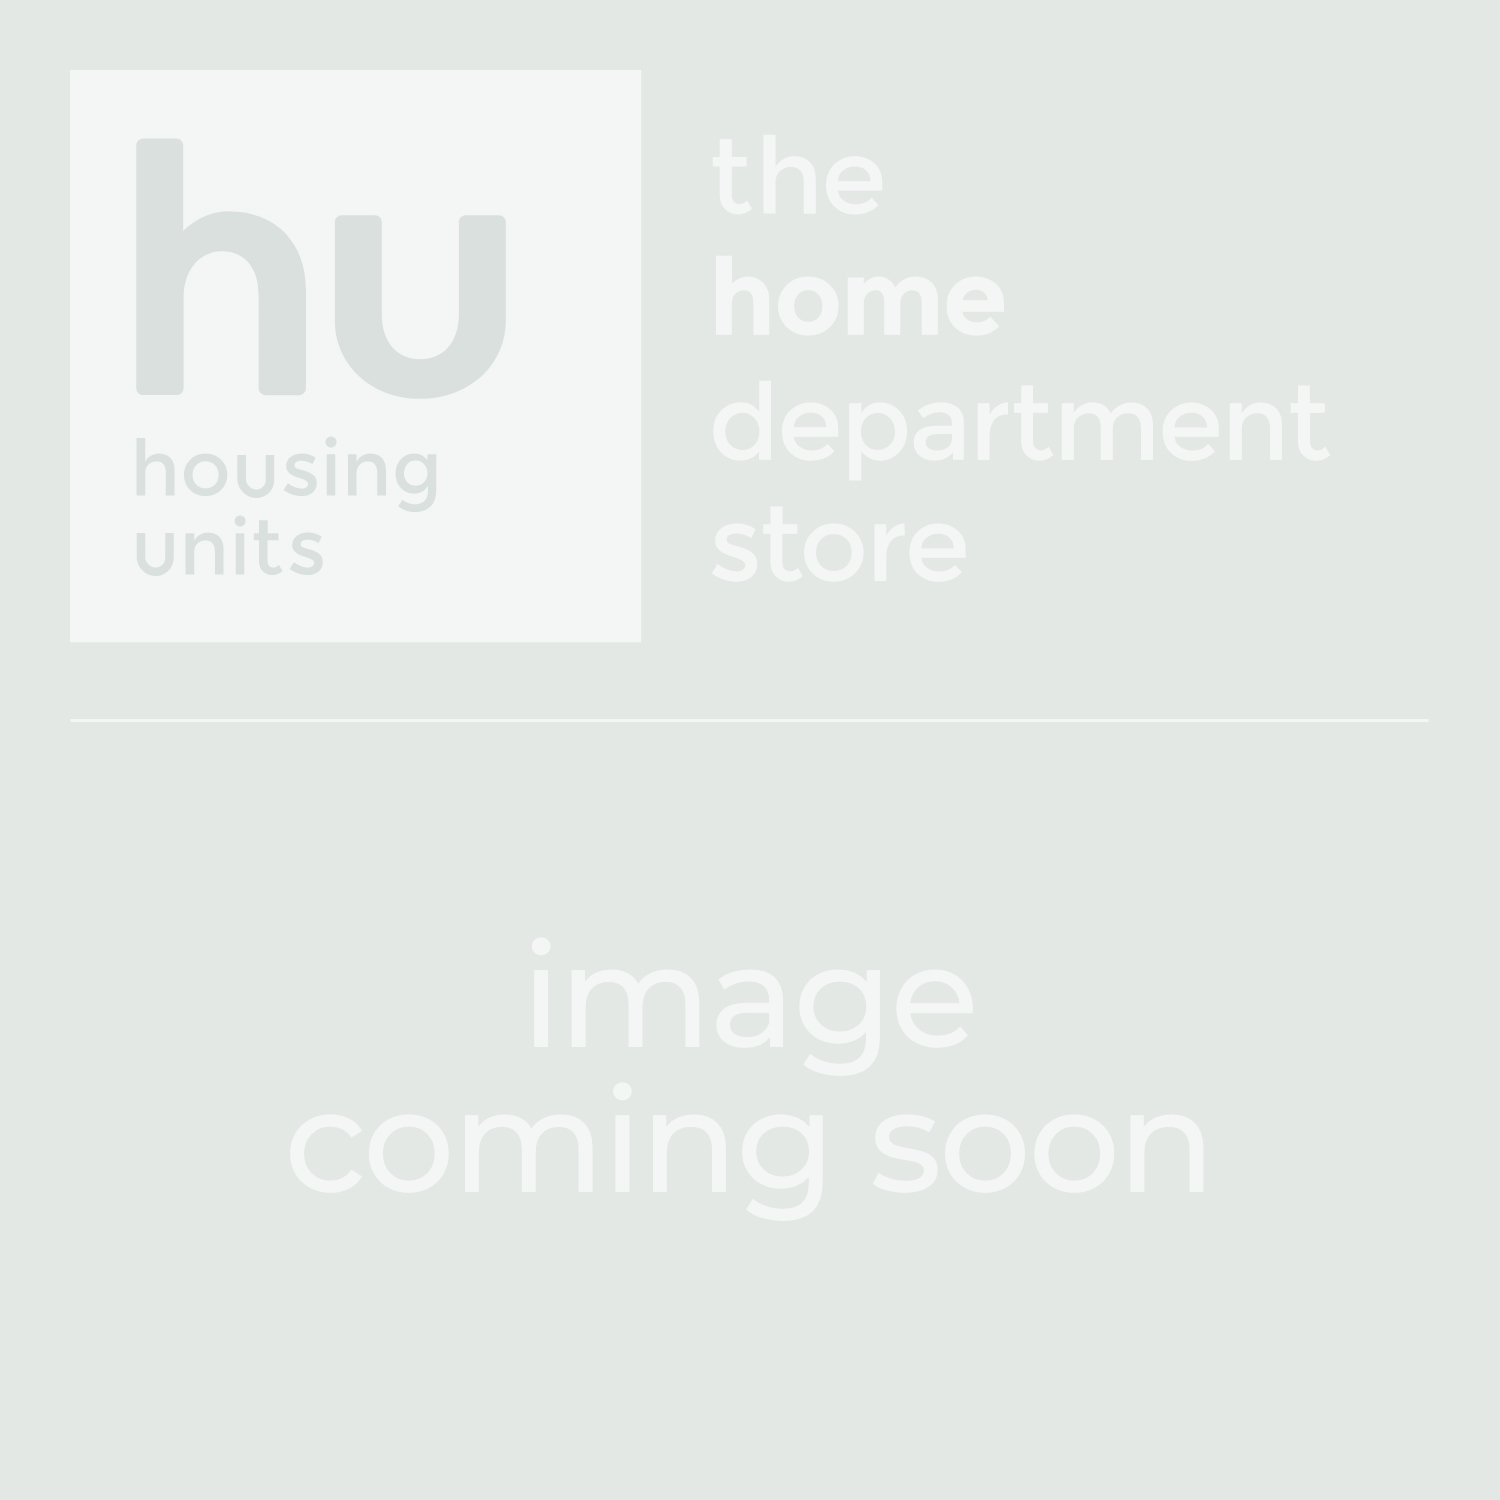 Milan Grey Rattan 3 Seater Garden Sofa - Lifestyle | Housing Units